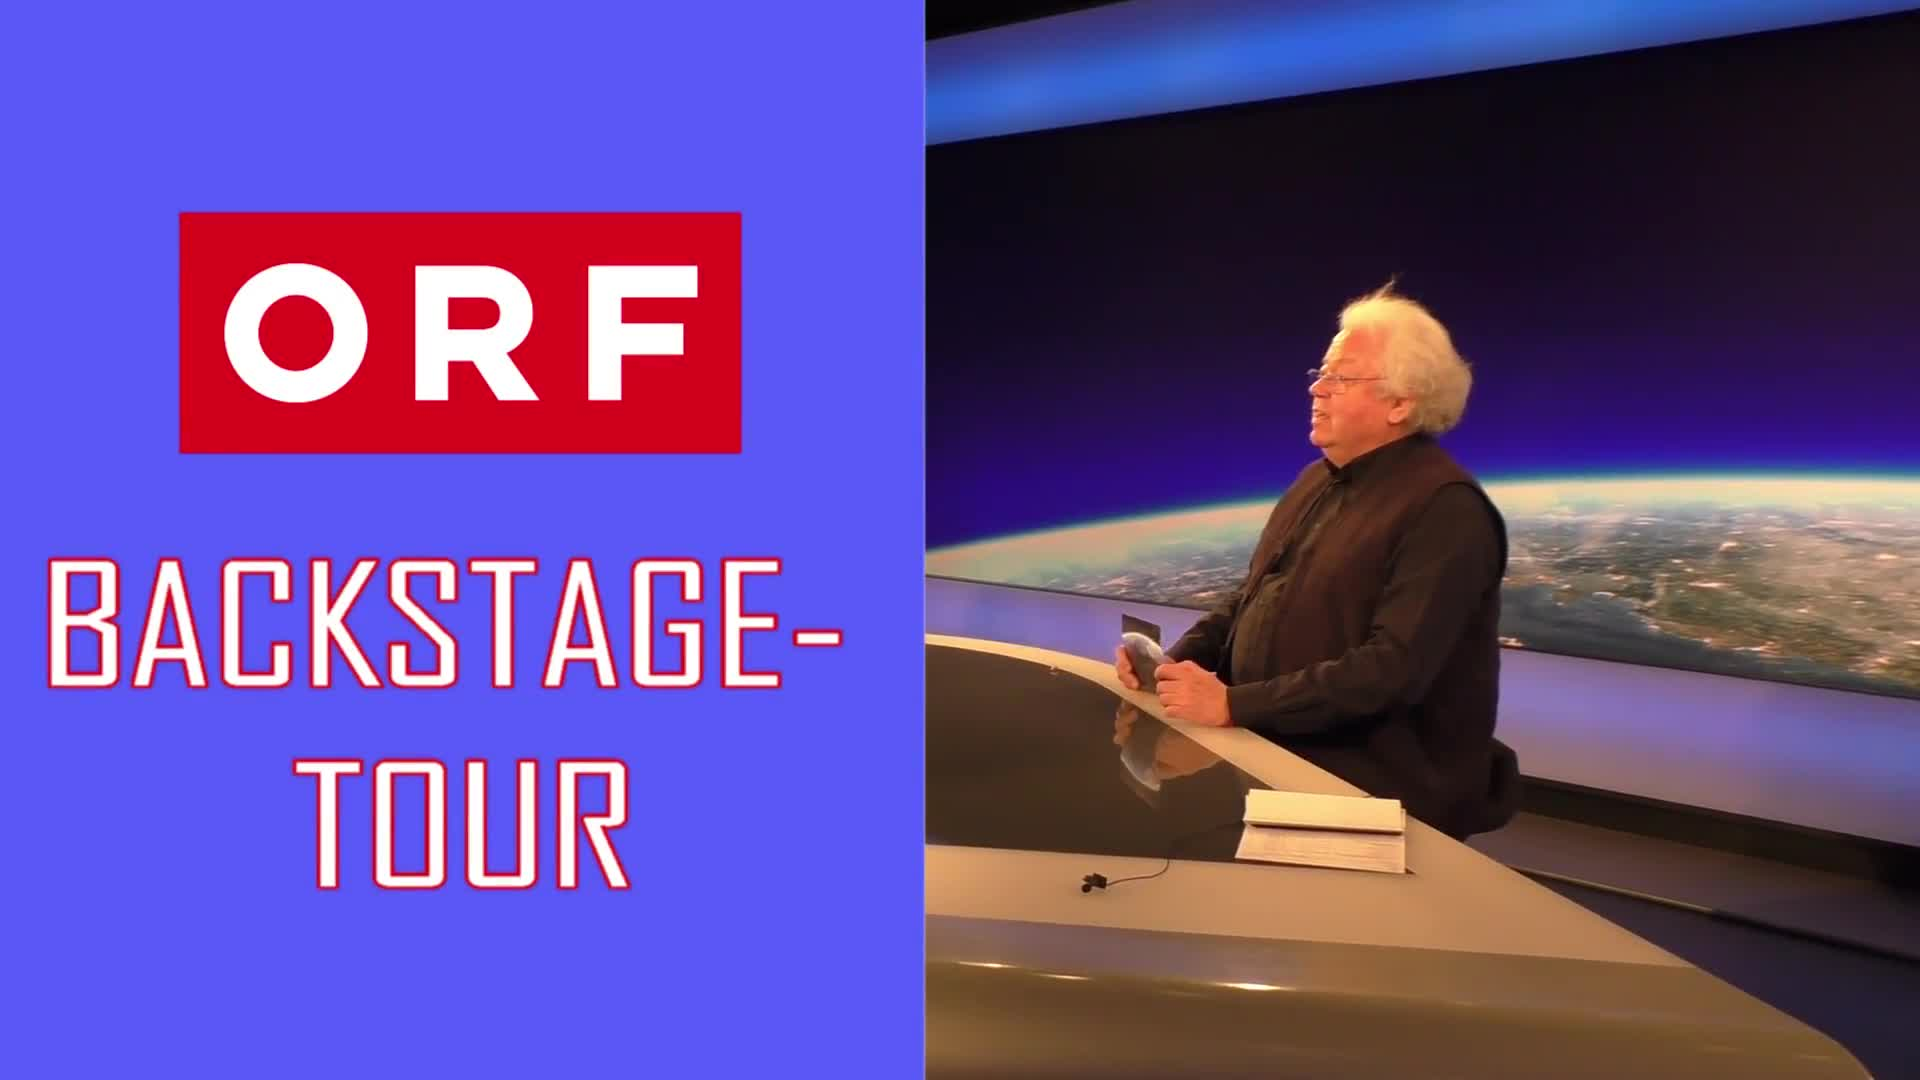 ORF Backstage - Tour